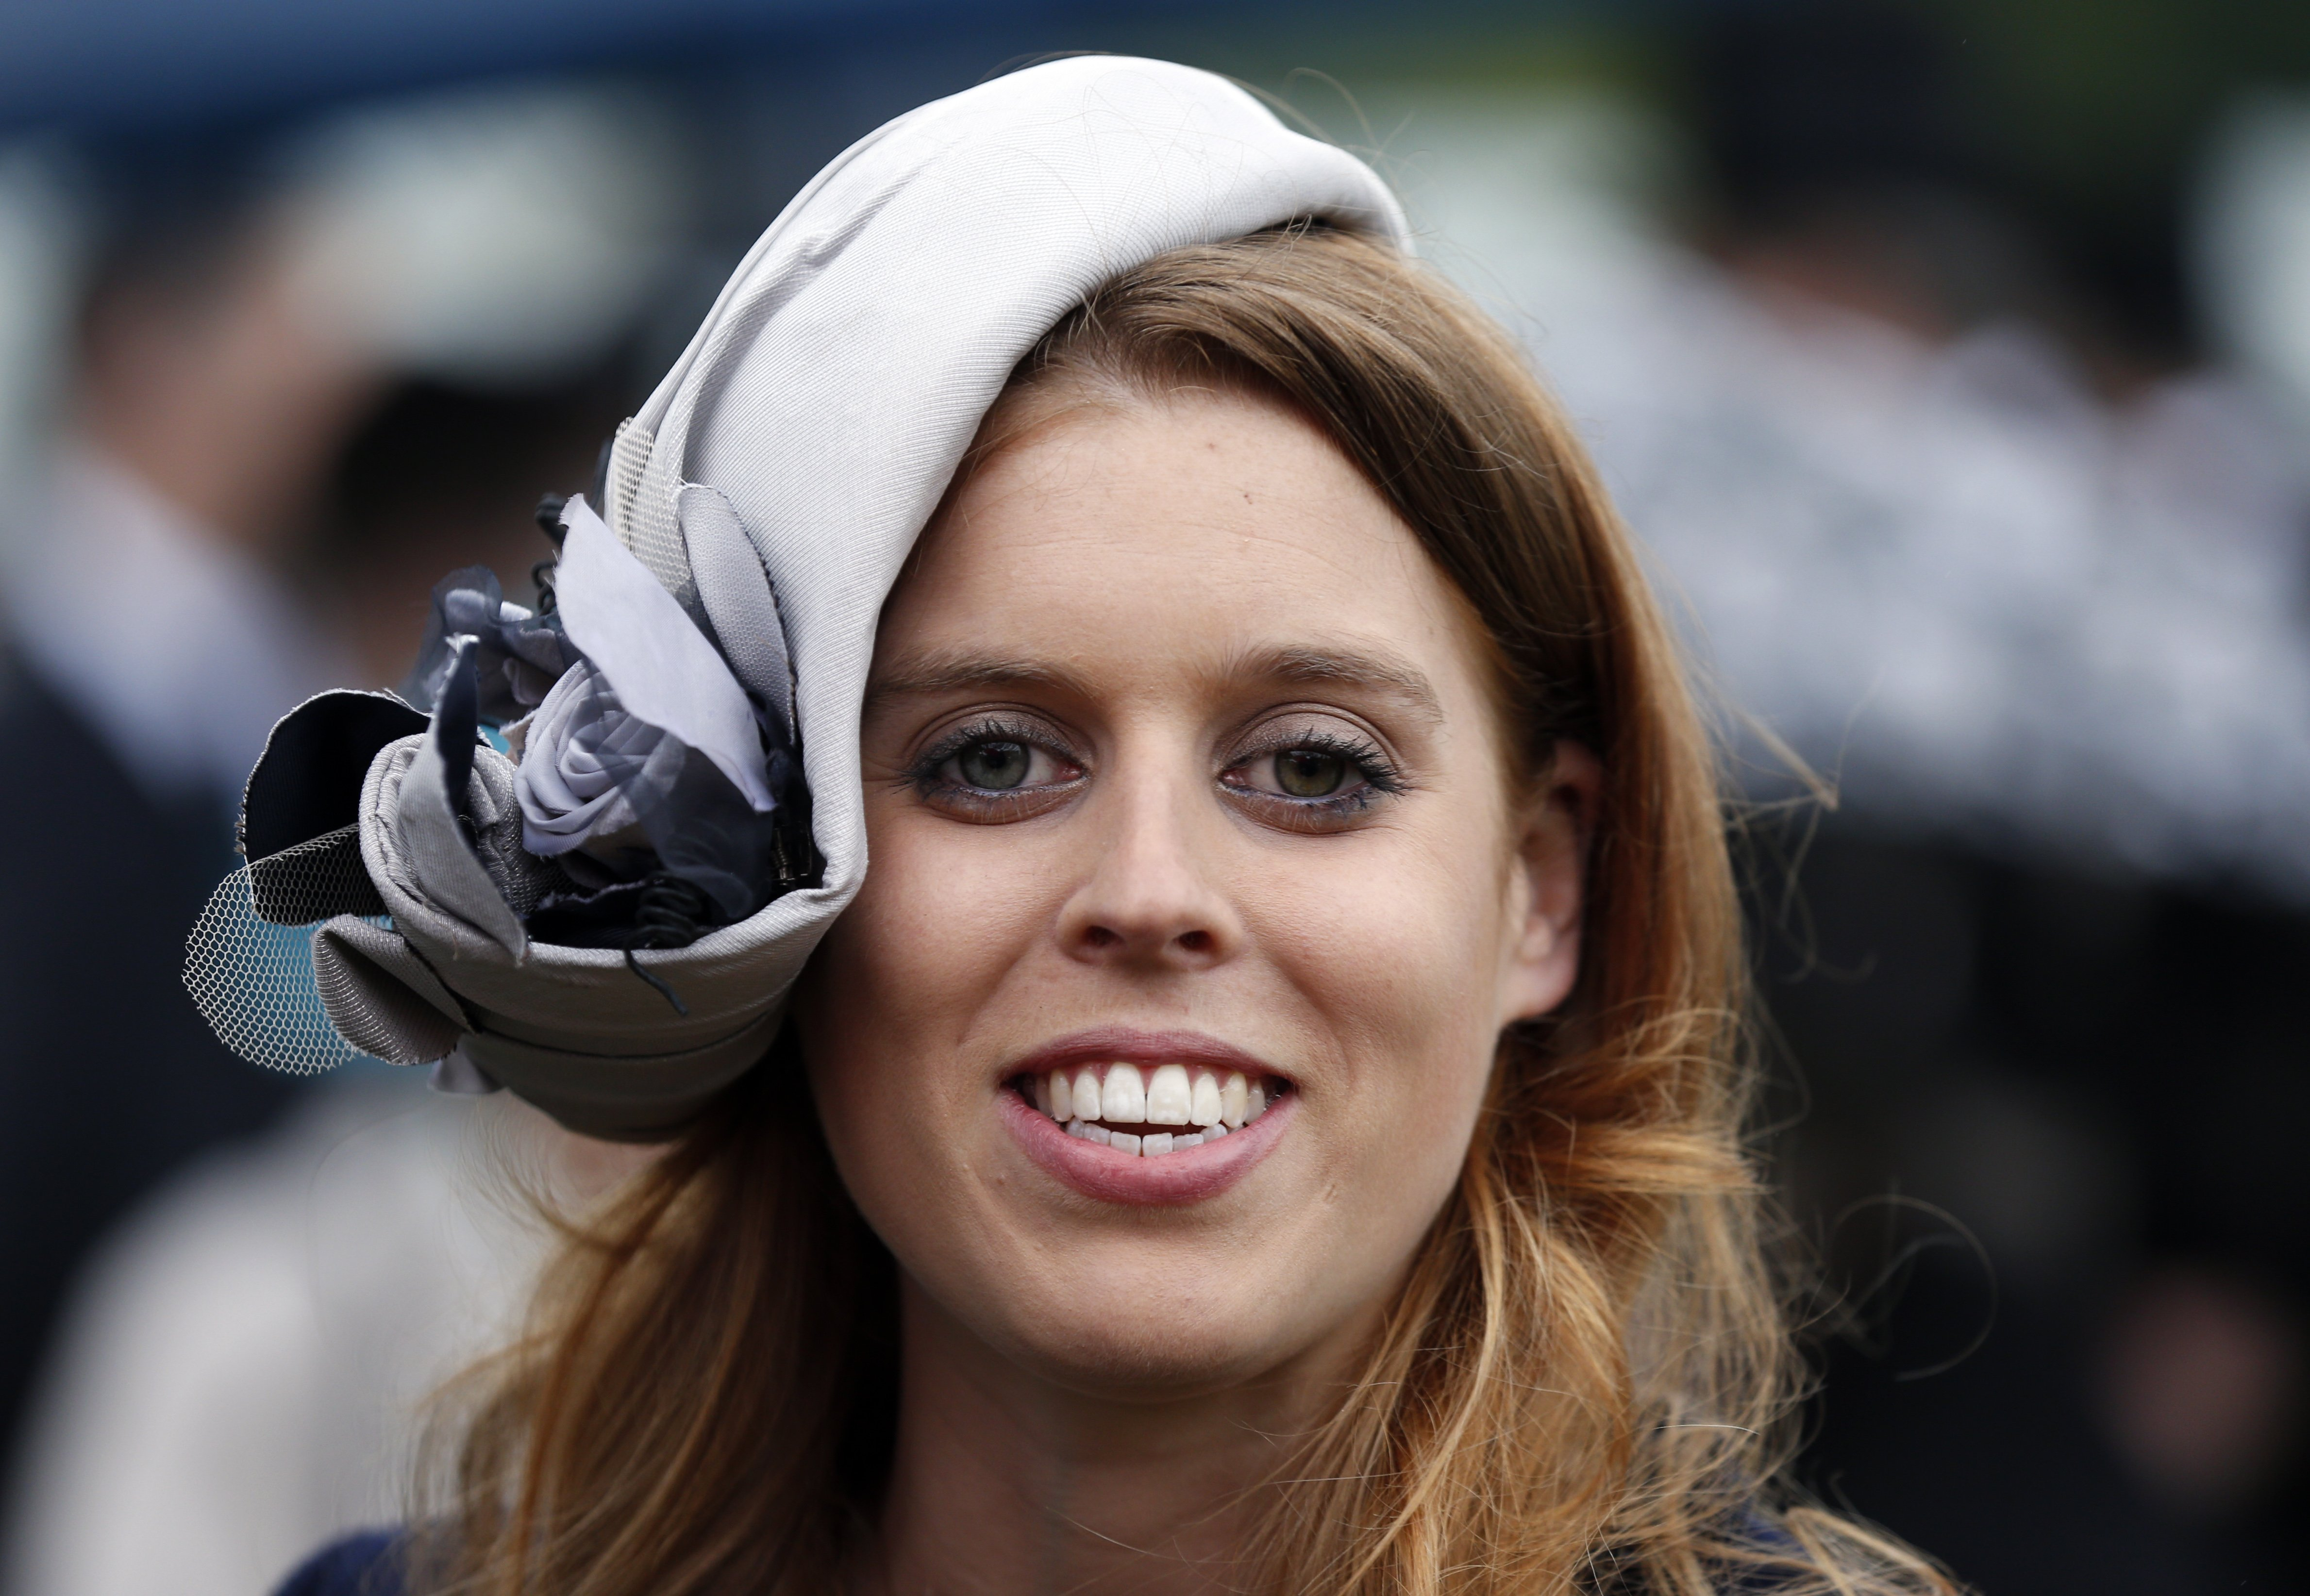 Princess Beatrice smiles during a garden party held at Buckingham Palace, on May 30, 2013 in London, England. | Source: Getty Imges